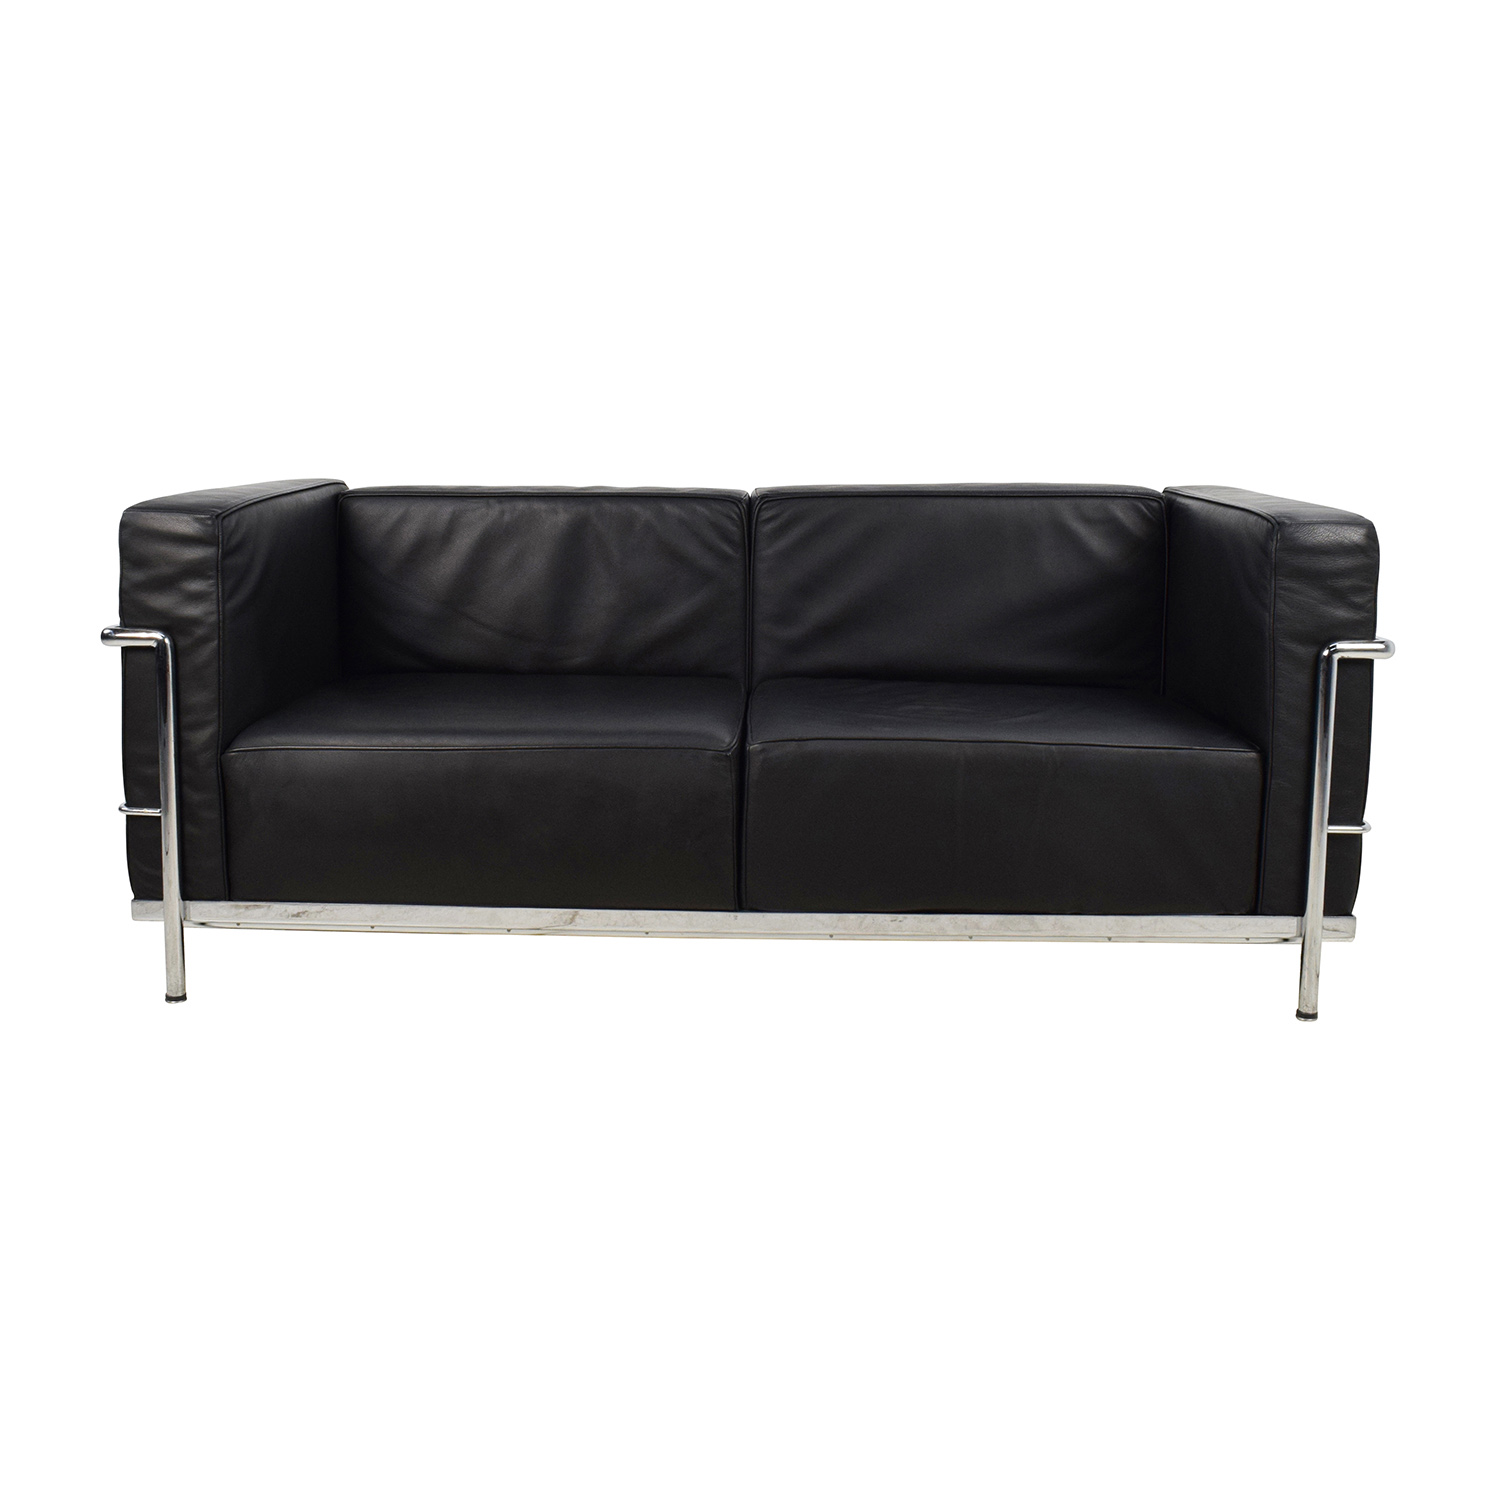 85% OFF - Design Within Reach Design Within Reach LC3 Grande Modele Two  Seat Black Leather Sofa / Sofas